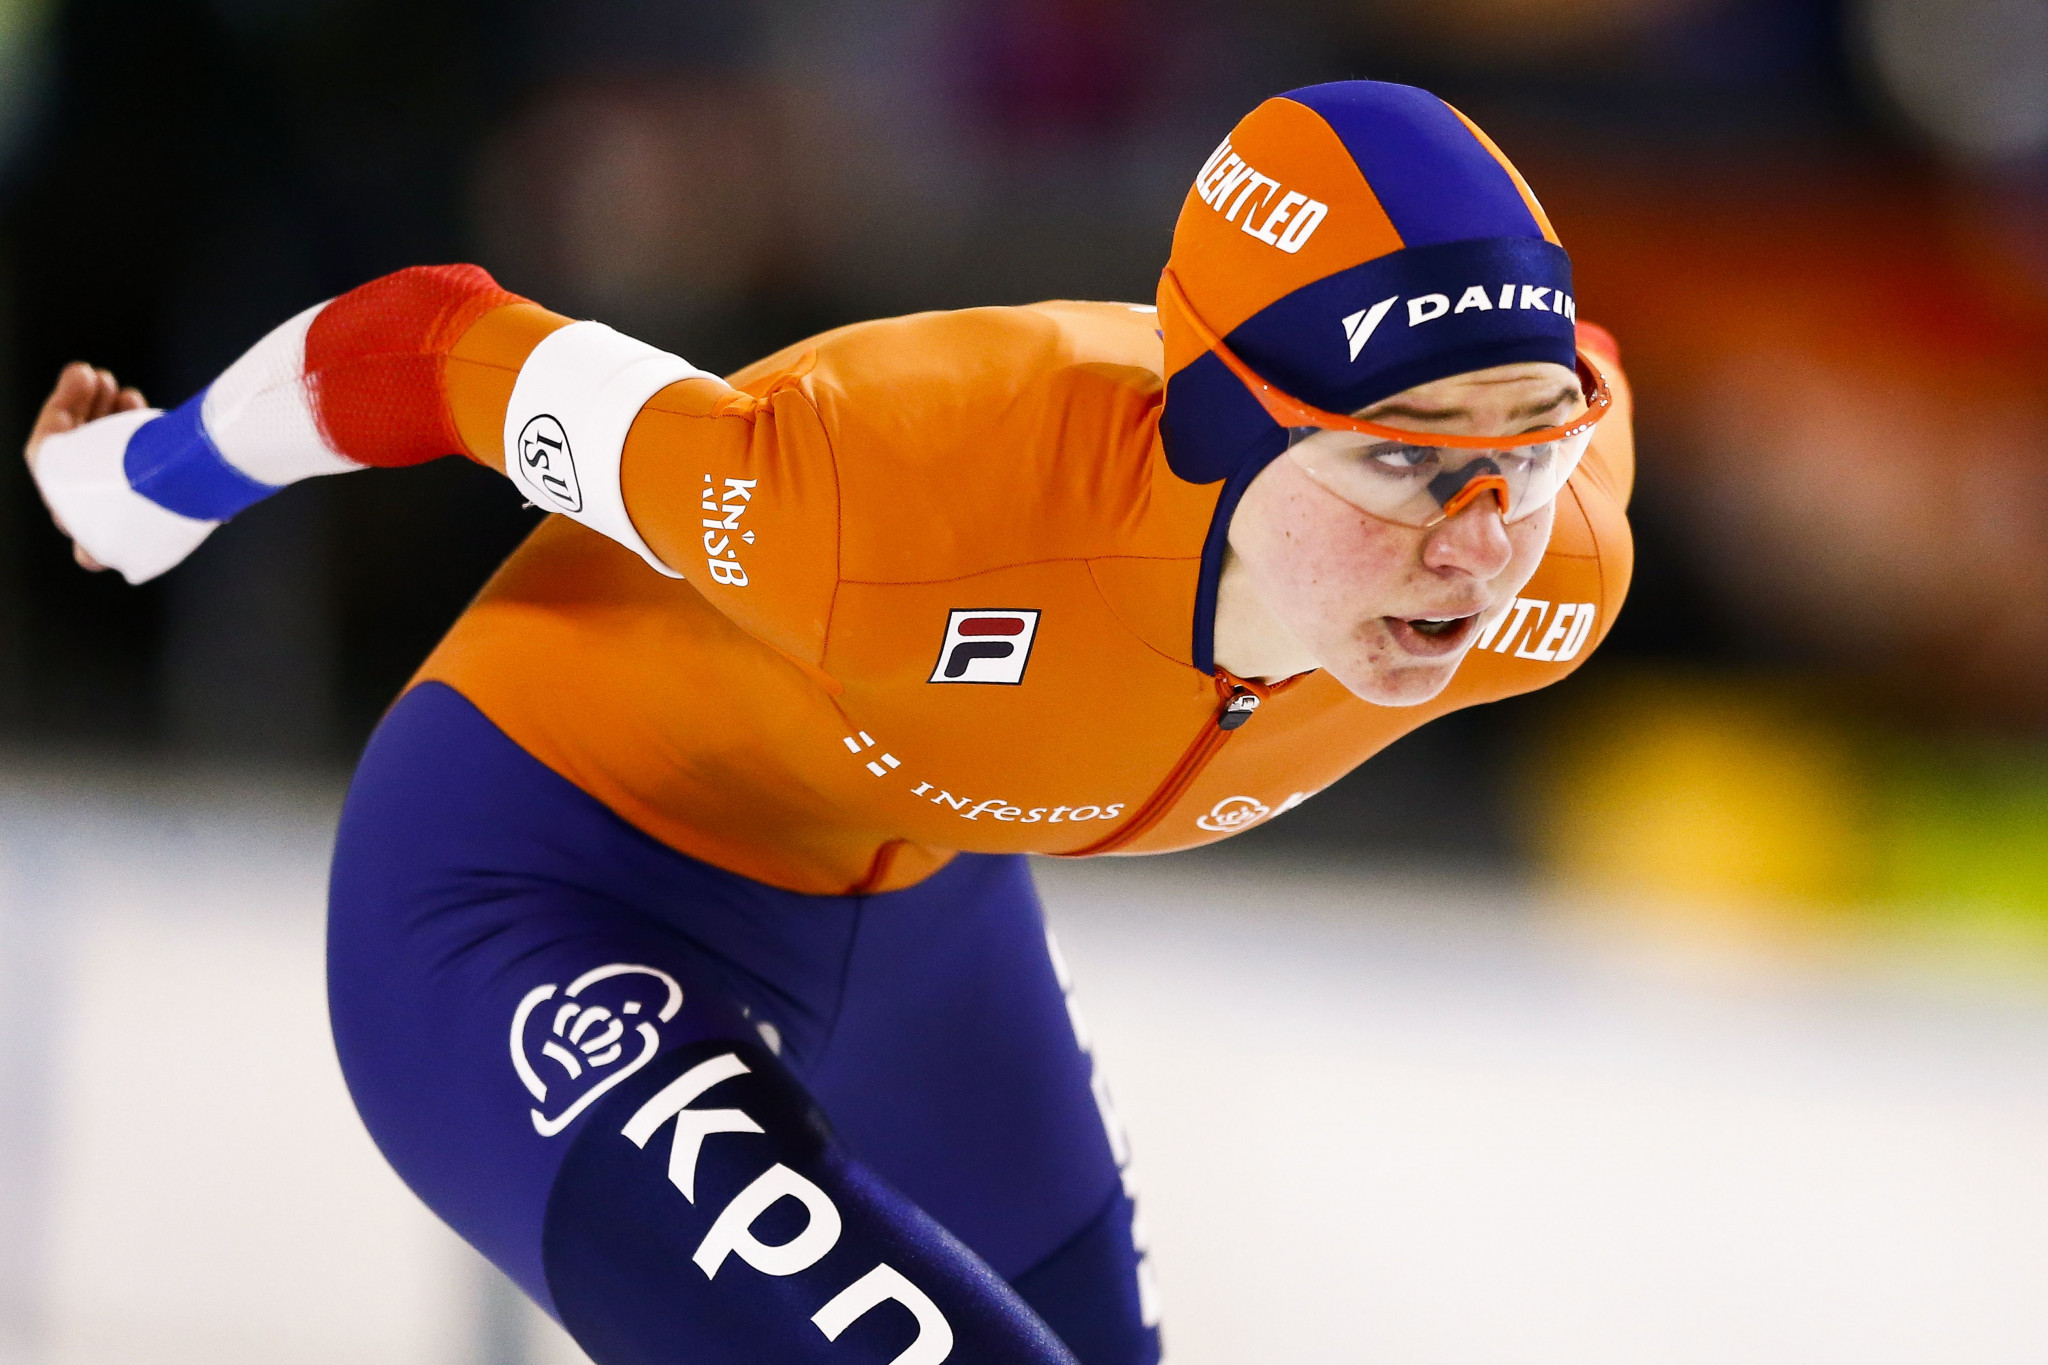 Esmee Visser of The Netherlands triumphed in the women's 3000m ©Getty Images